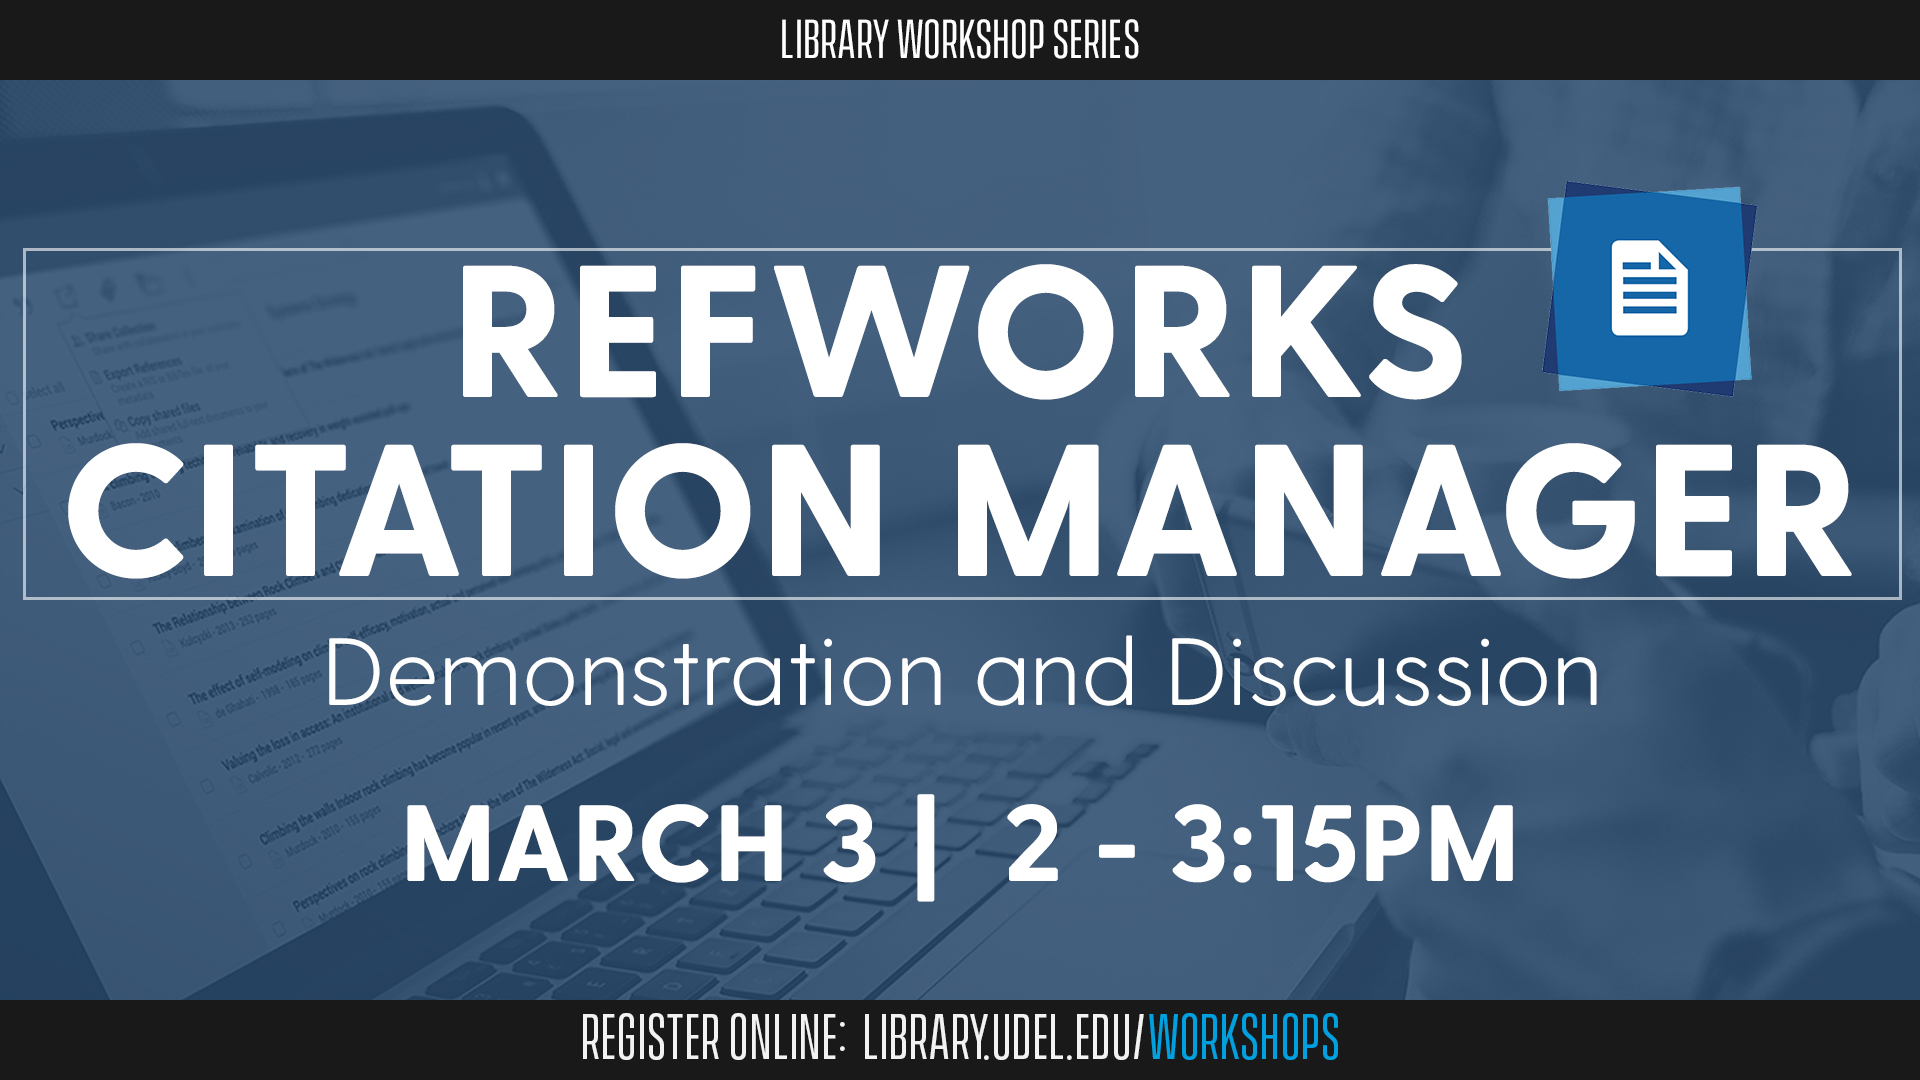 RefWorks Citation Manager: Demonstration and Discussion